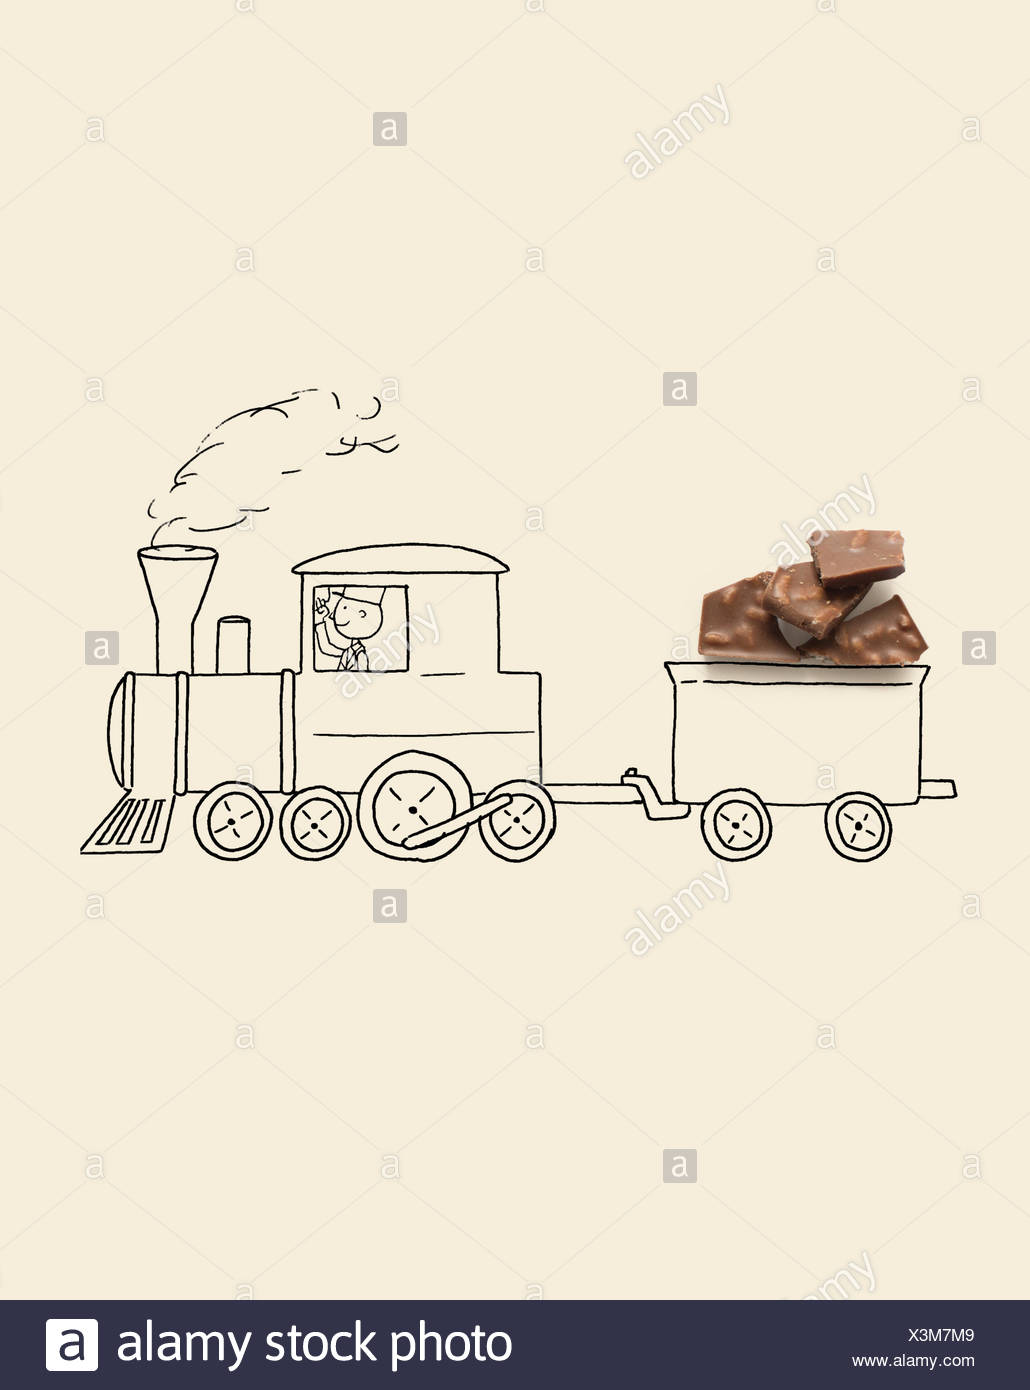 Conceptual freight train with goods wagon - Stock Image